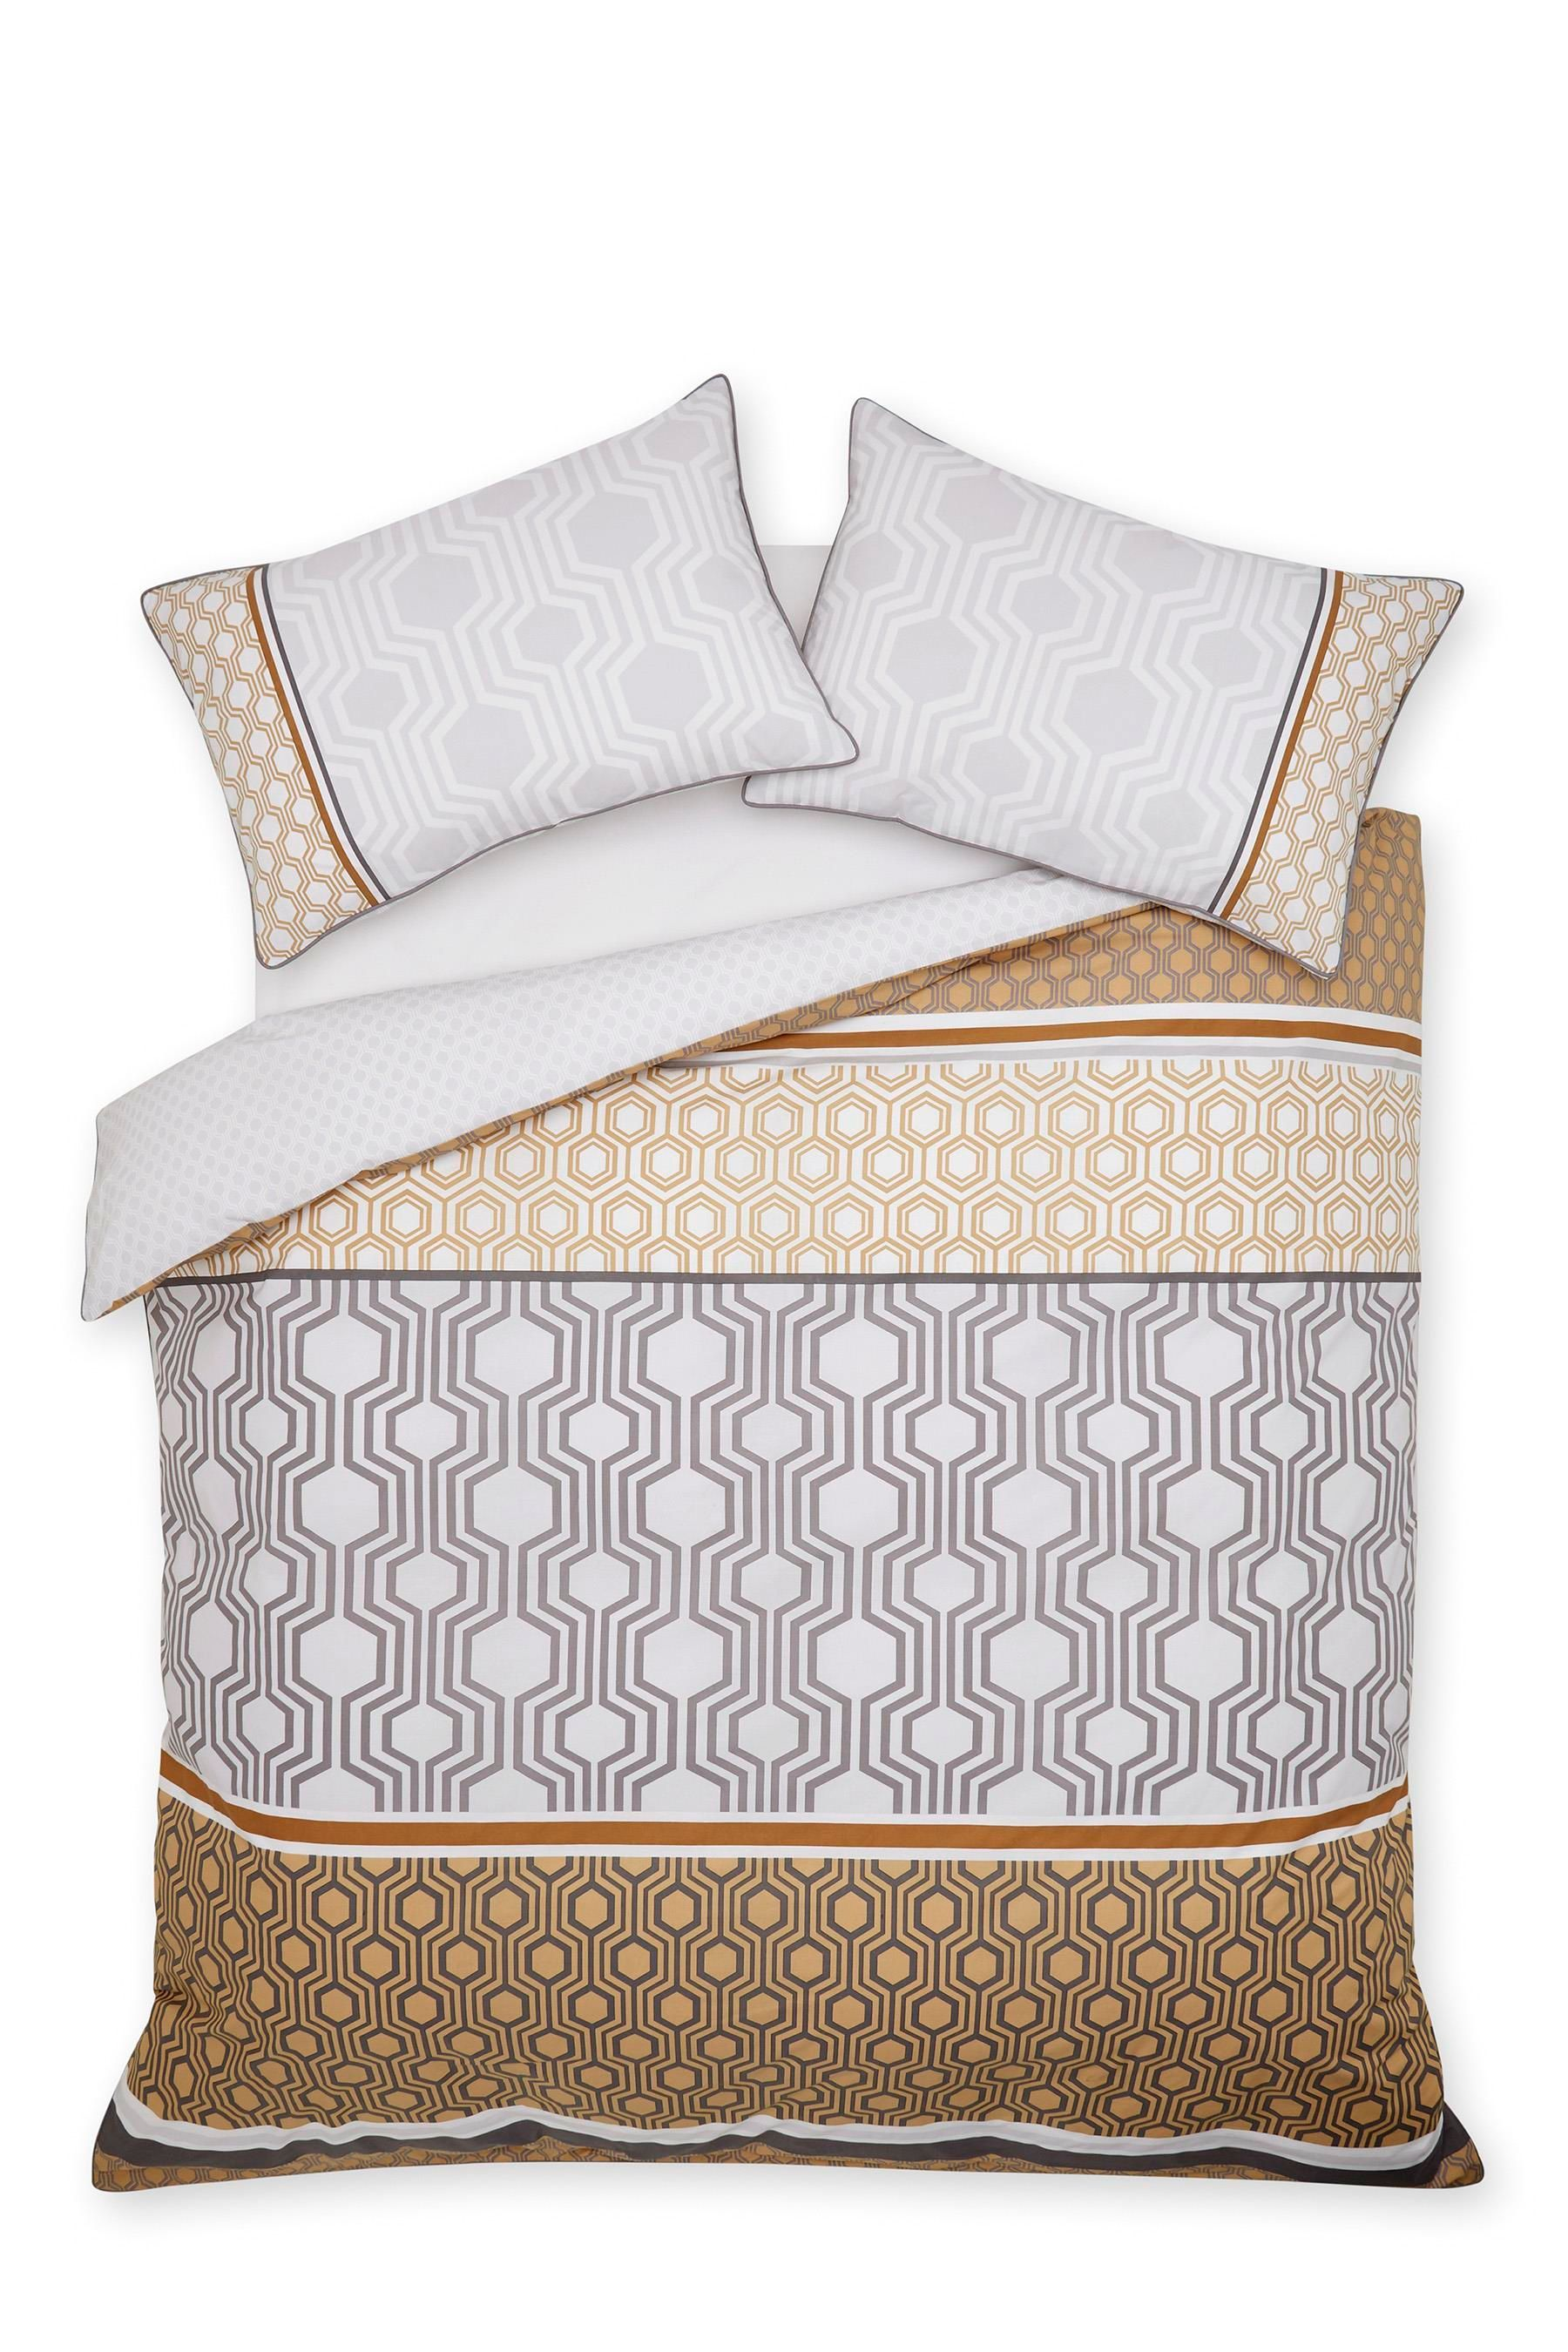 Moroccan Bedroom Furniture Uk Buy Cotton Rich Luxe Geo Stripe Bed Set From The Next Uk Online